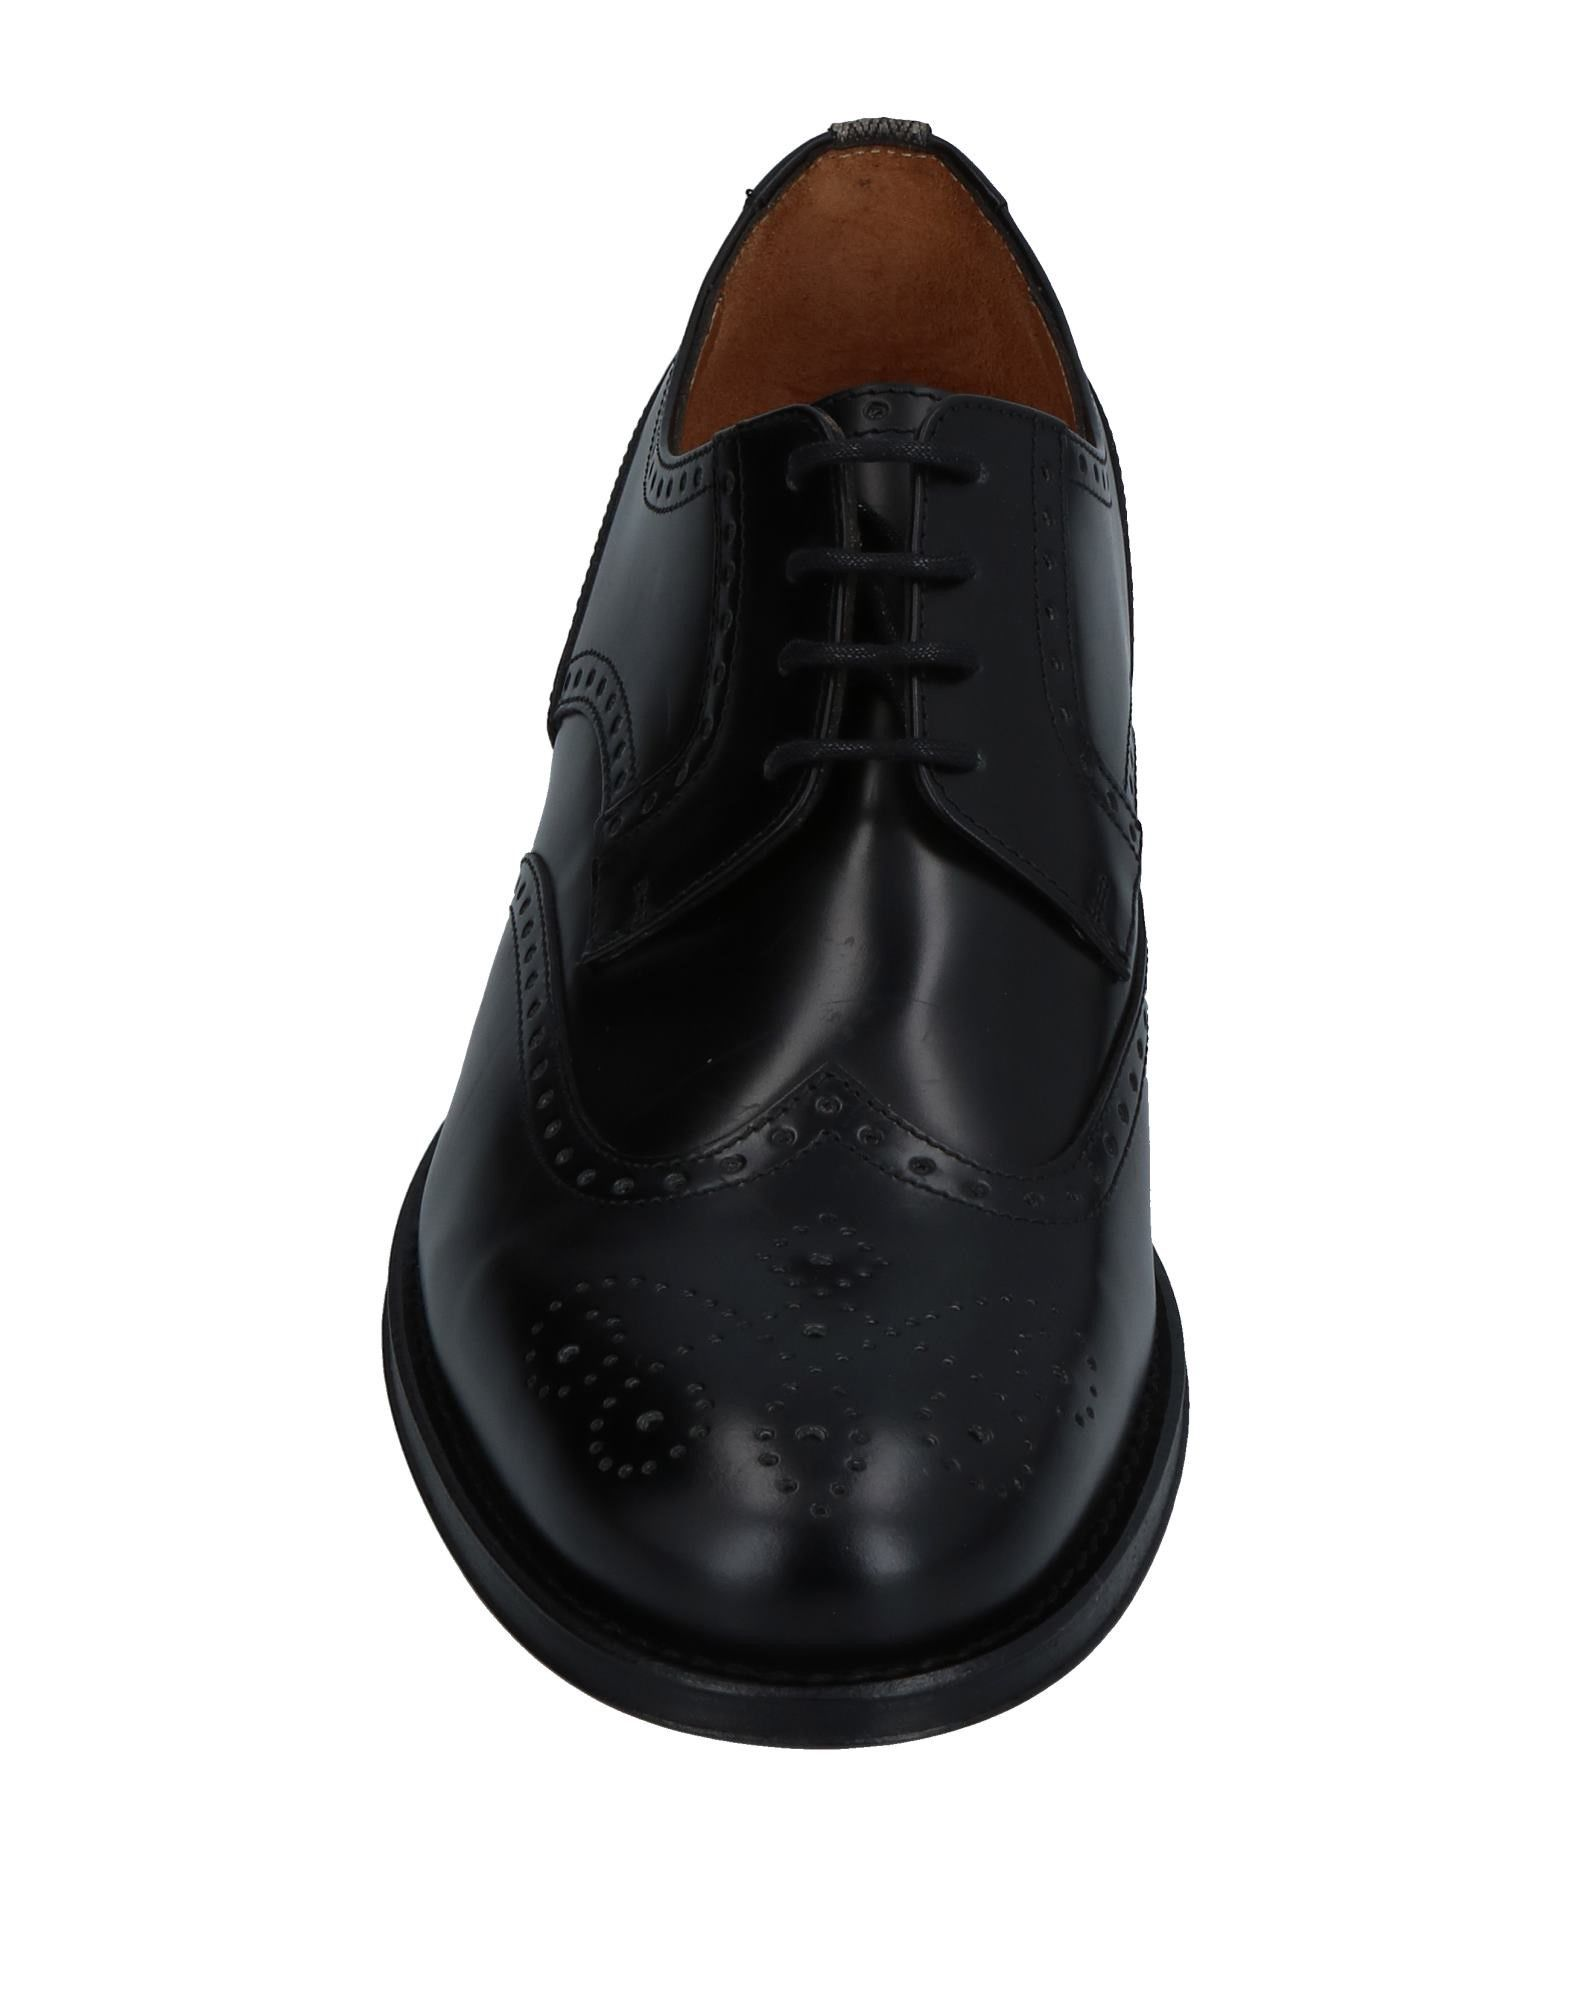 Chaussures À Lacets Ps By Paul Smith Homme - Chaussures À Lacets Ps By Paul Smith sur